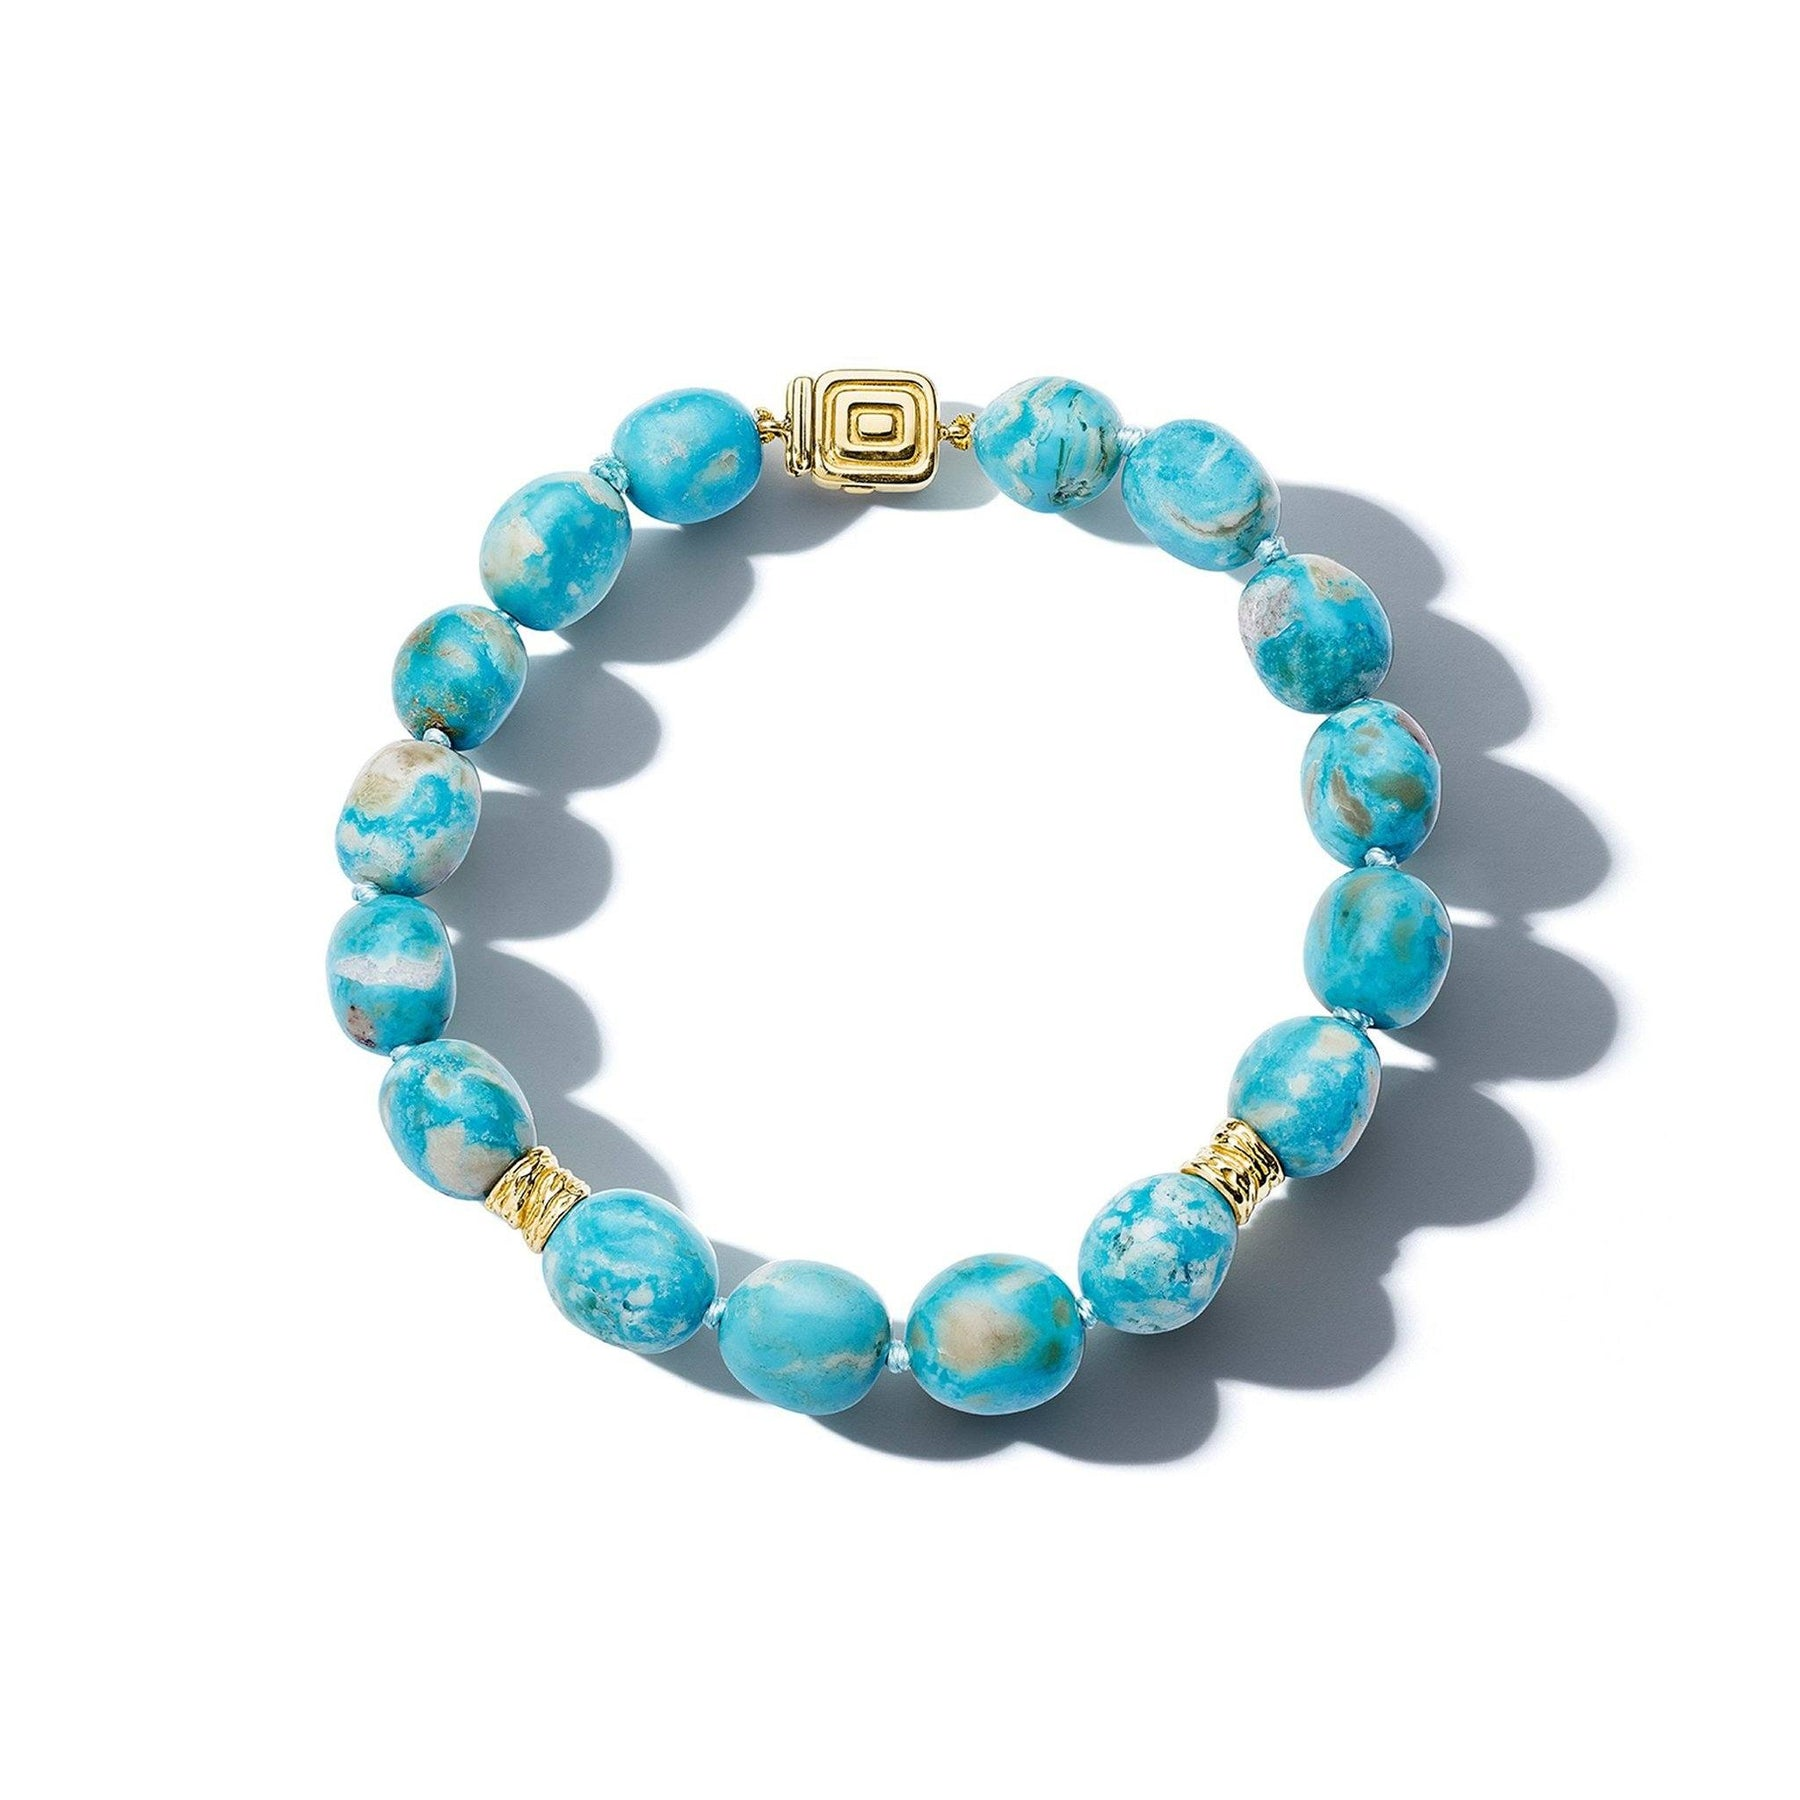 Mimi So Wonderland Turquoise Bead Bracelet_18k Yellow Gold